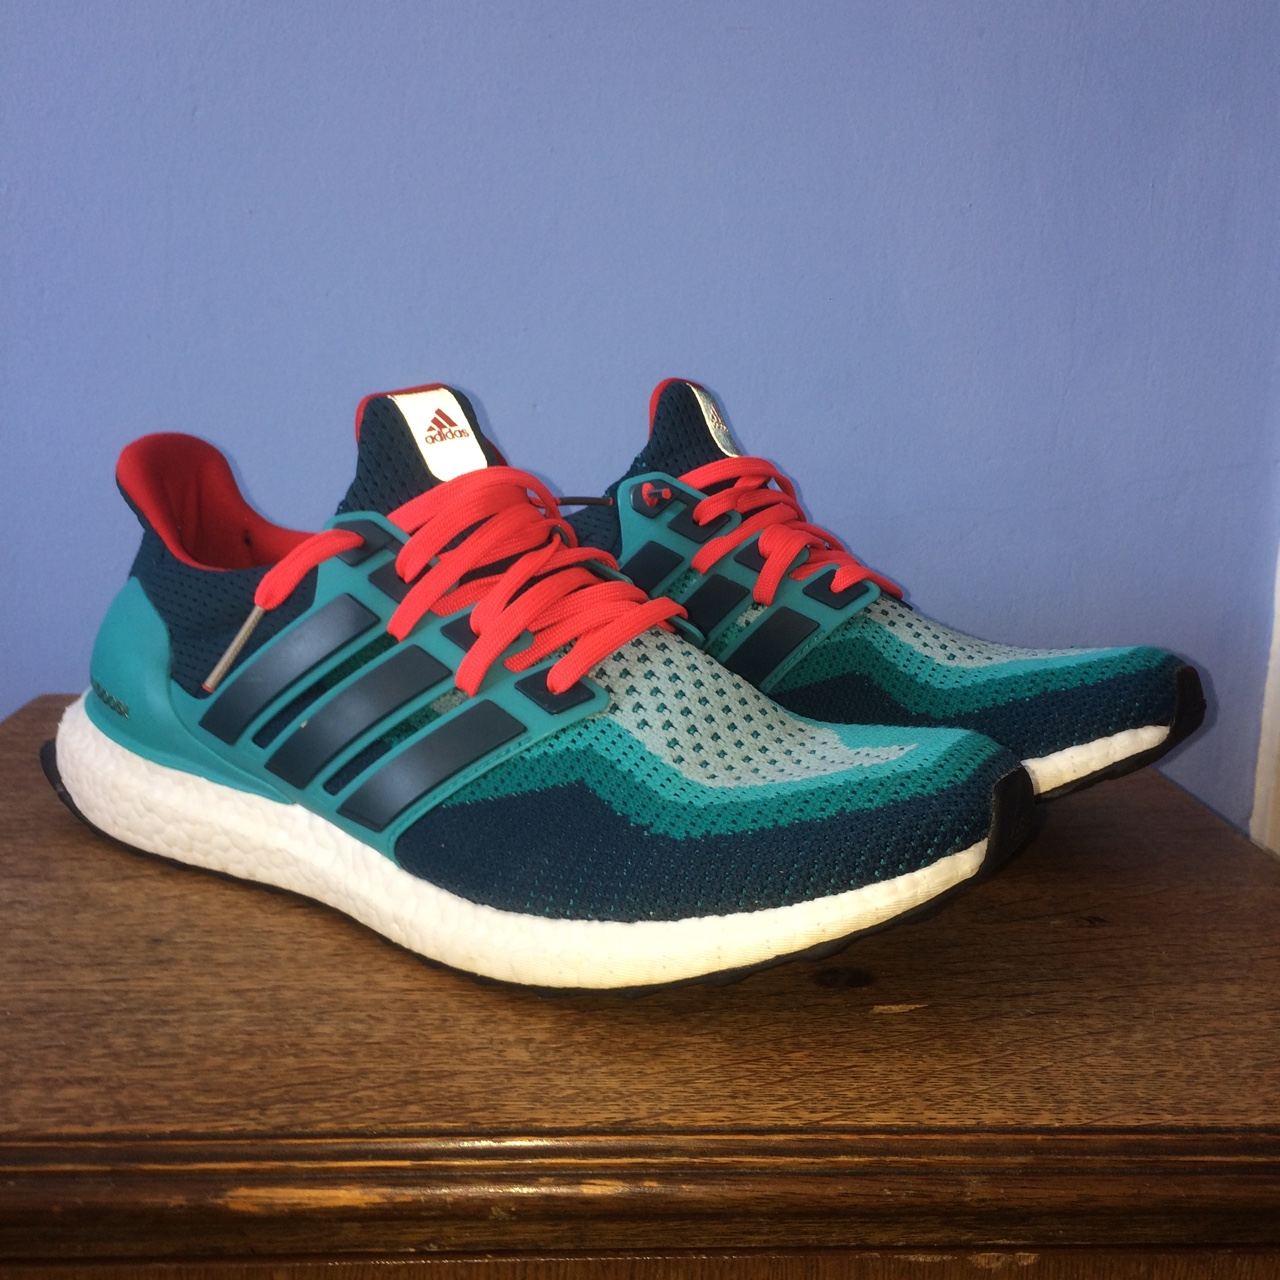 ADIDAS Ultra boost Trainer shoes v 2.0 in Turquoise Depop